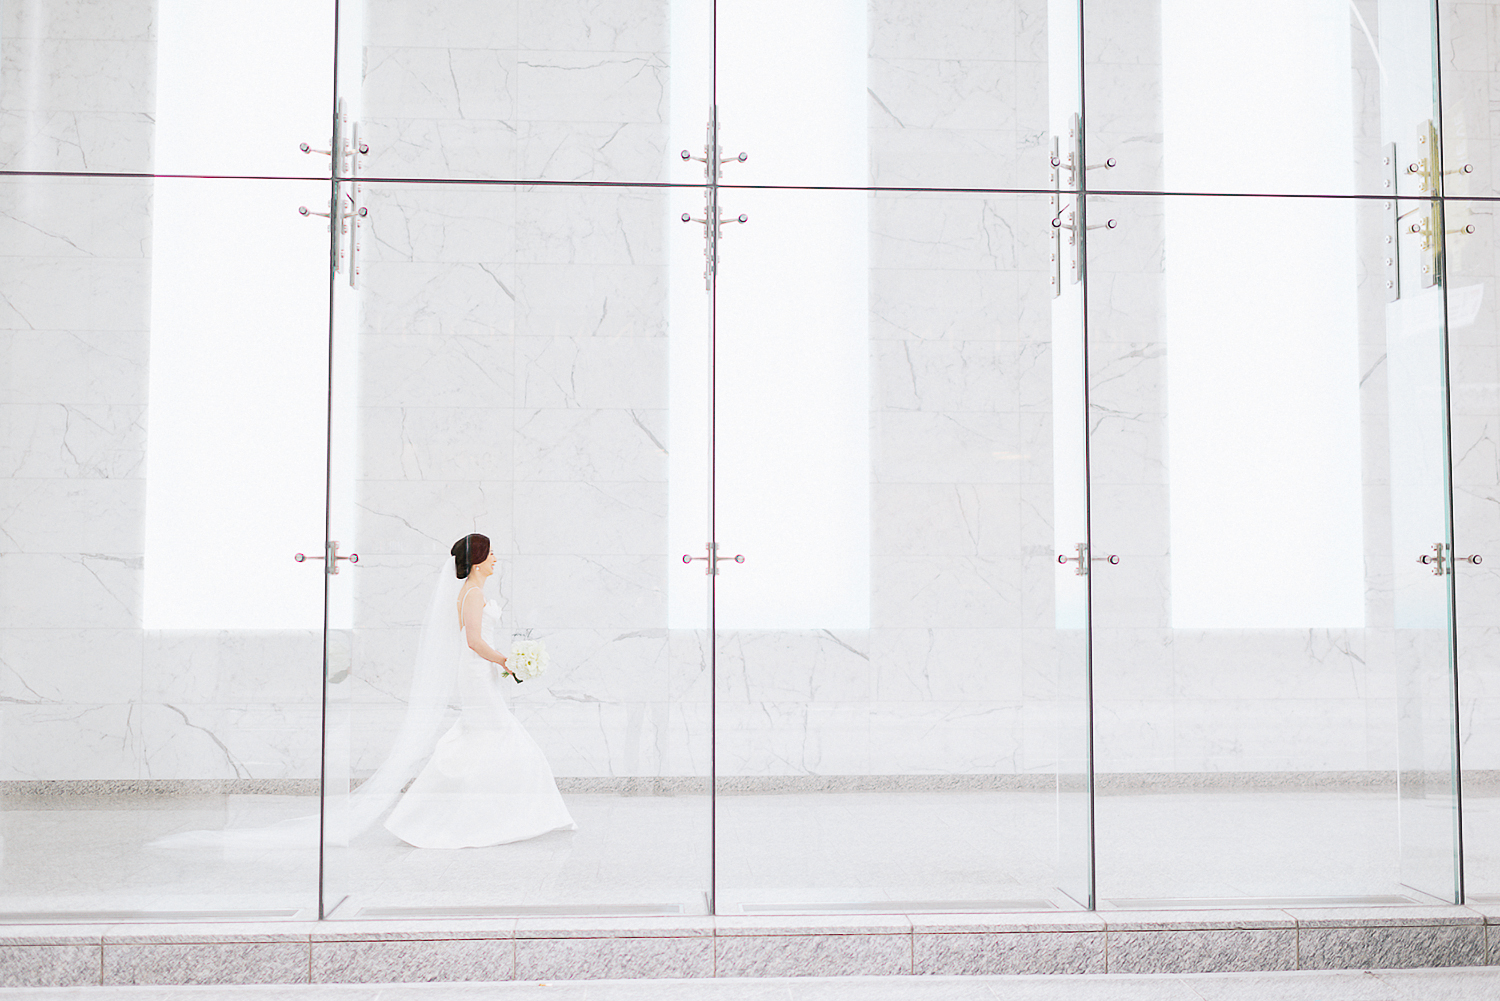 Best-Wedding-Photographers-Toronto_-Urban-City-Wedding-Photography-Downtown-Toronto-Photographer_Vintage-Bride-and-Groom-Details_The-Chase-Wedding-Venue_Candid-Photojournalistic-Documentary-Epic-First-Look-Bride-Wide.jpg